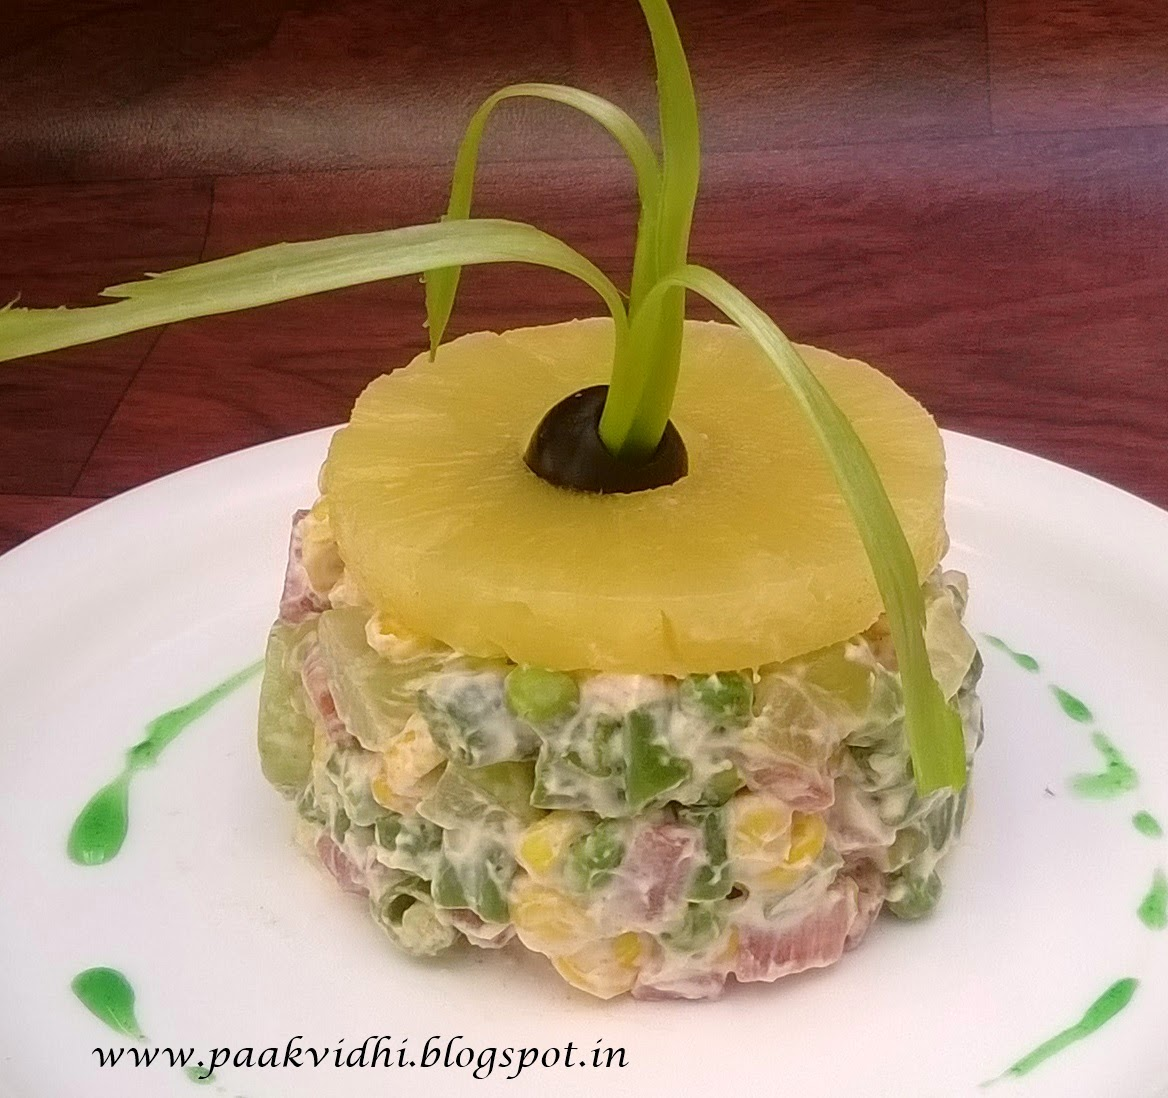 http://paakvidhi.blogspot.in/2014/03/russian-salad.html